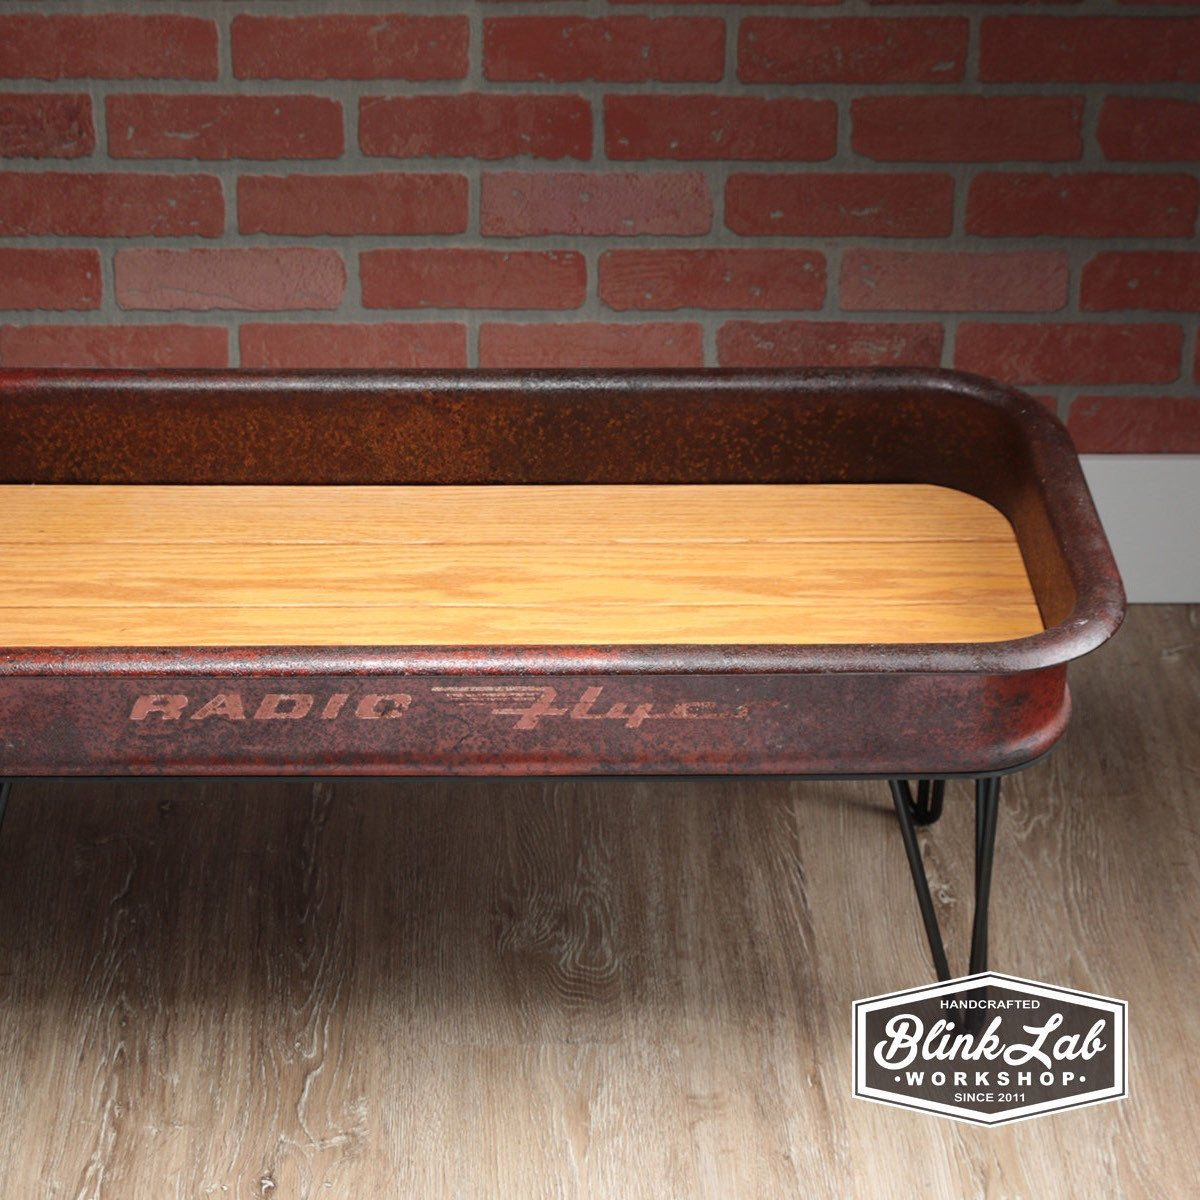 newest addition to the shop, a repurposed radio flyer wagon coffee